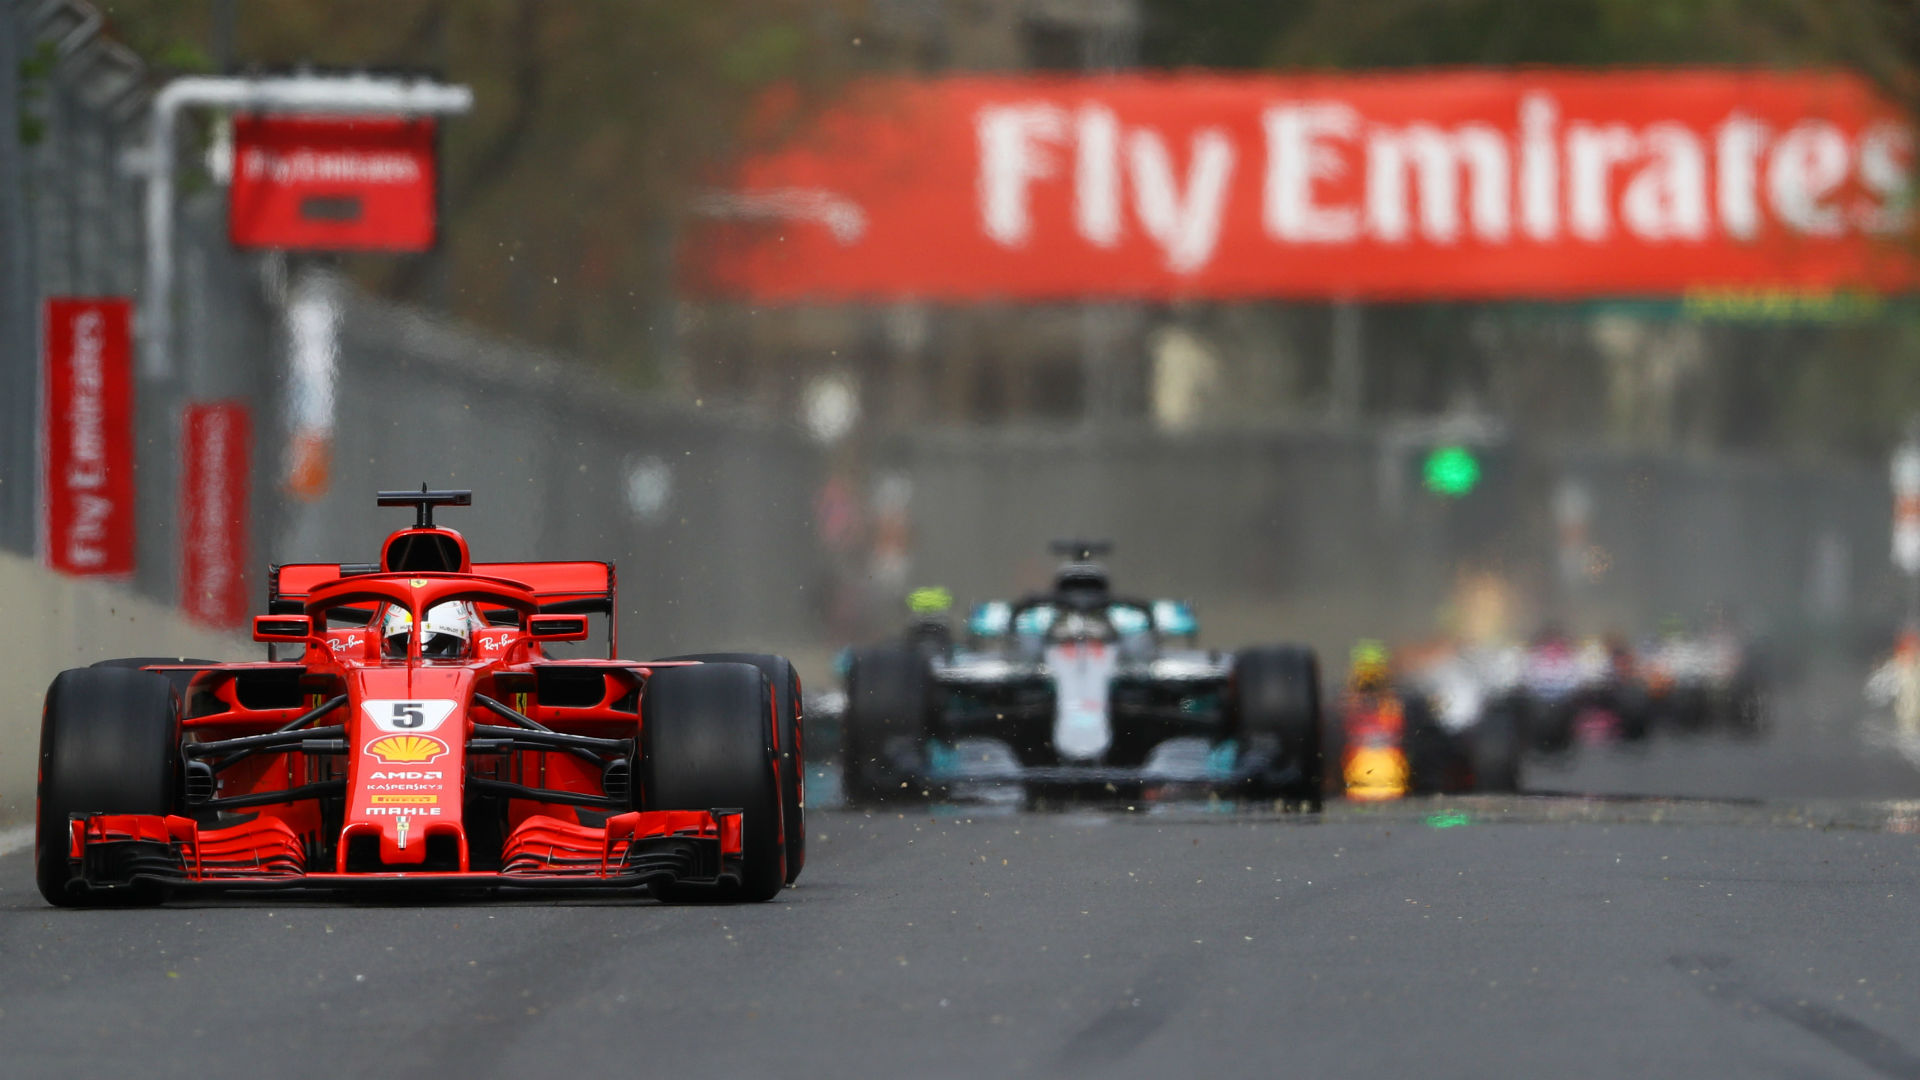 F1 Azerbaijan Grand Prix: Start time, TV channel, live stream for 2019 race